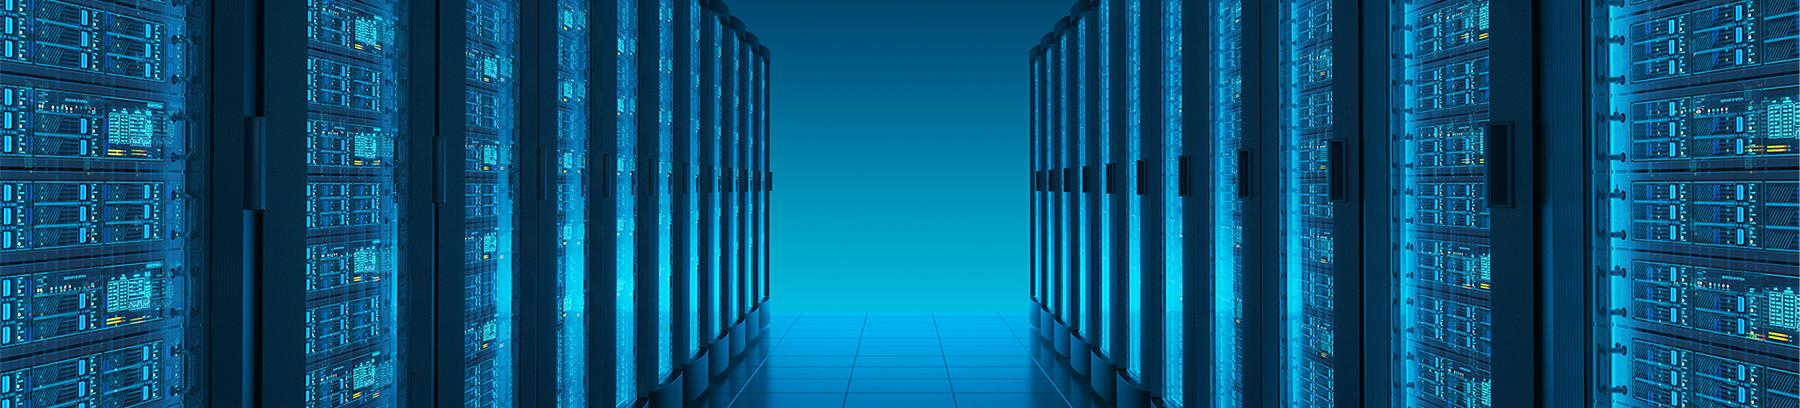 Stylized image of a server room.